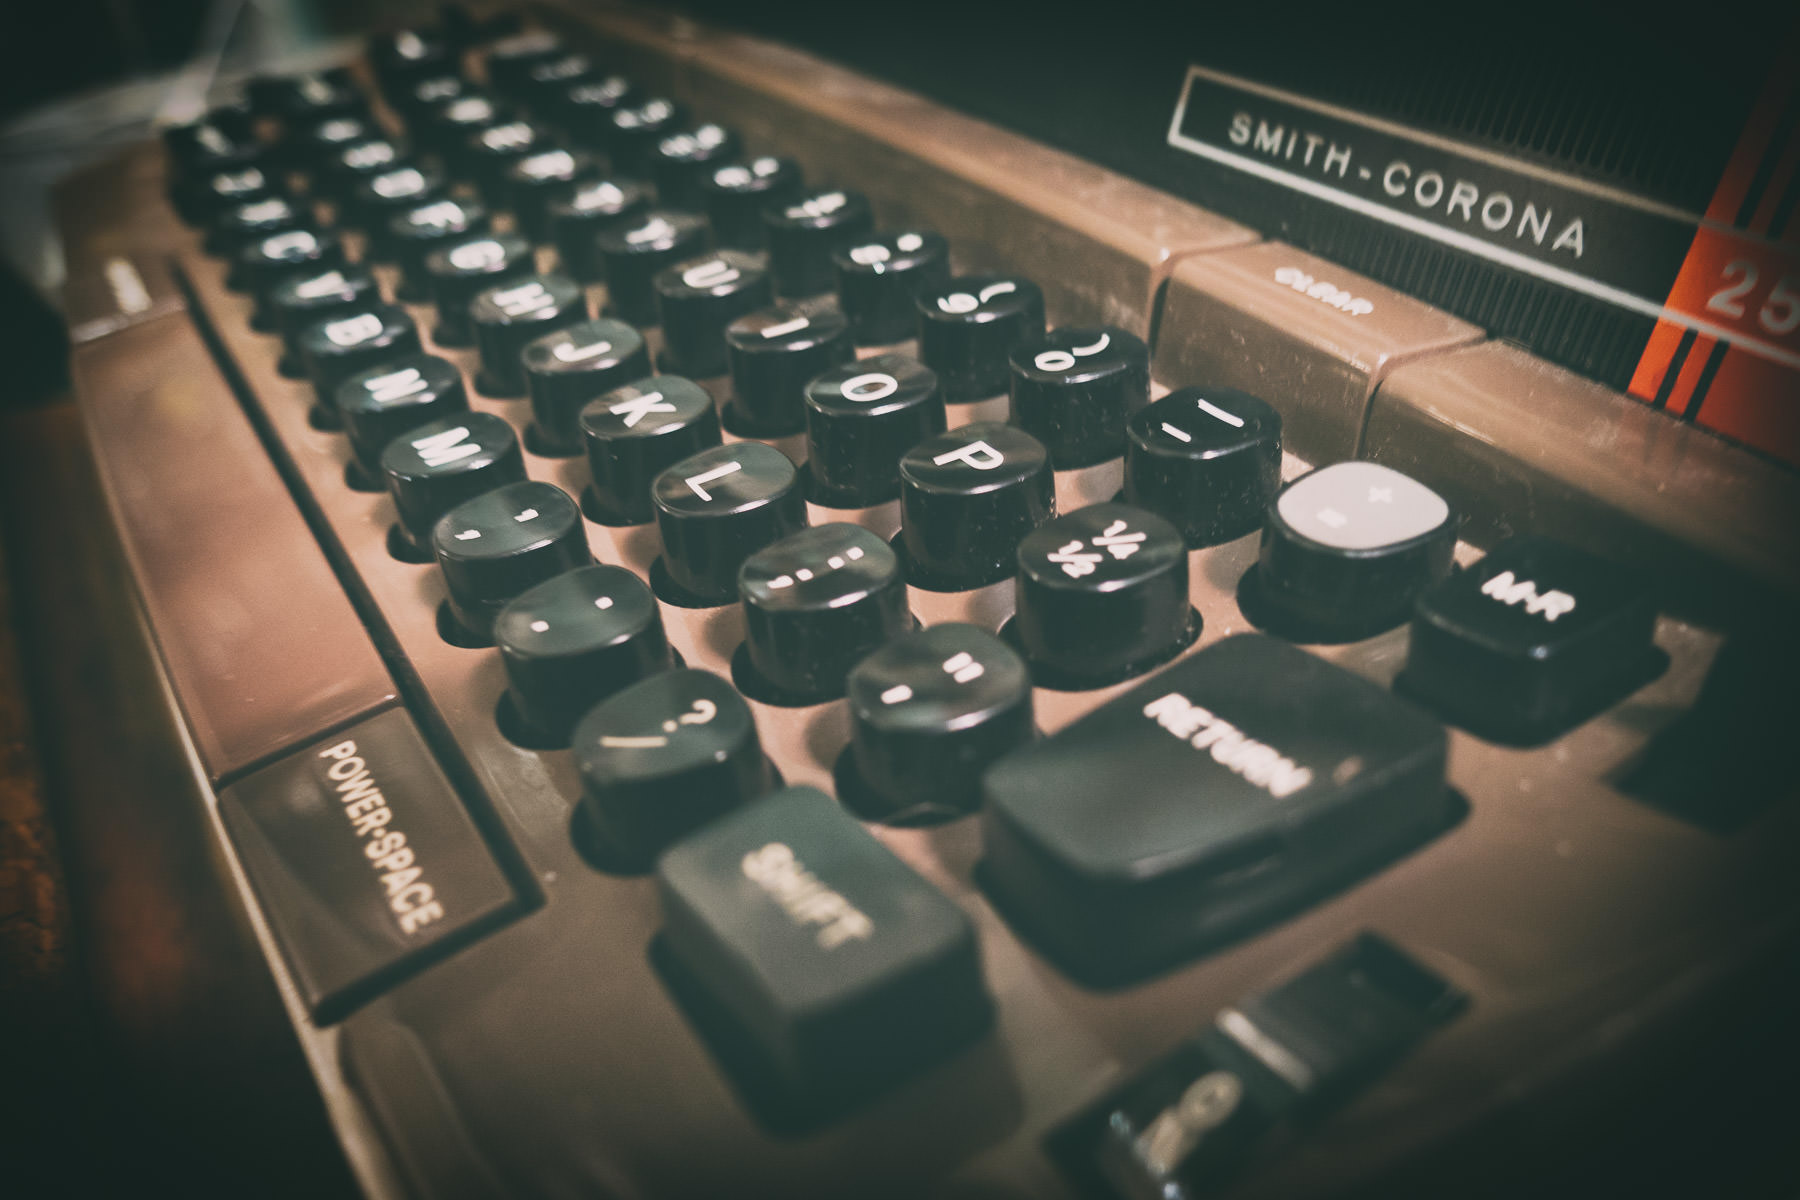 Detail of an antique Smith-Corona Model 250 electric typewriter, found in a Nacogdoches, Texas antique shop.